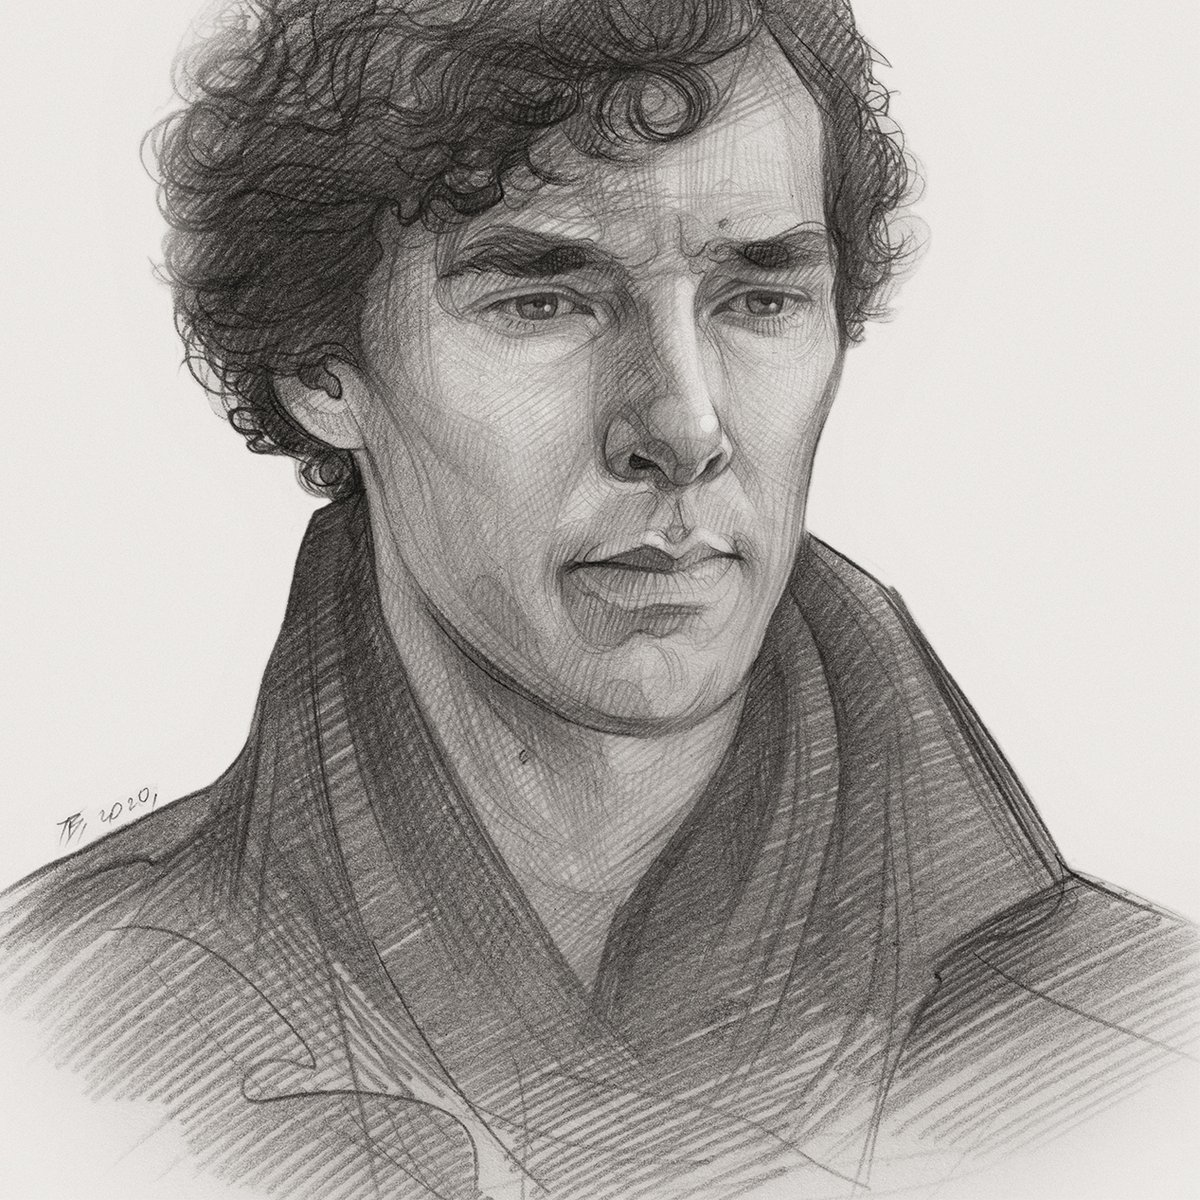 Another portrait of Sherlock. #BenedictCumberbatch #Sherlock #draw #sketch #myart I think not the most perfect, but still share =)pic.twitter.com/C1gWKXt0MF